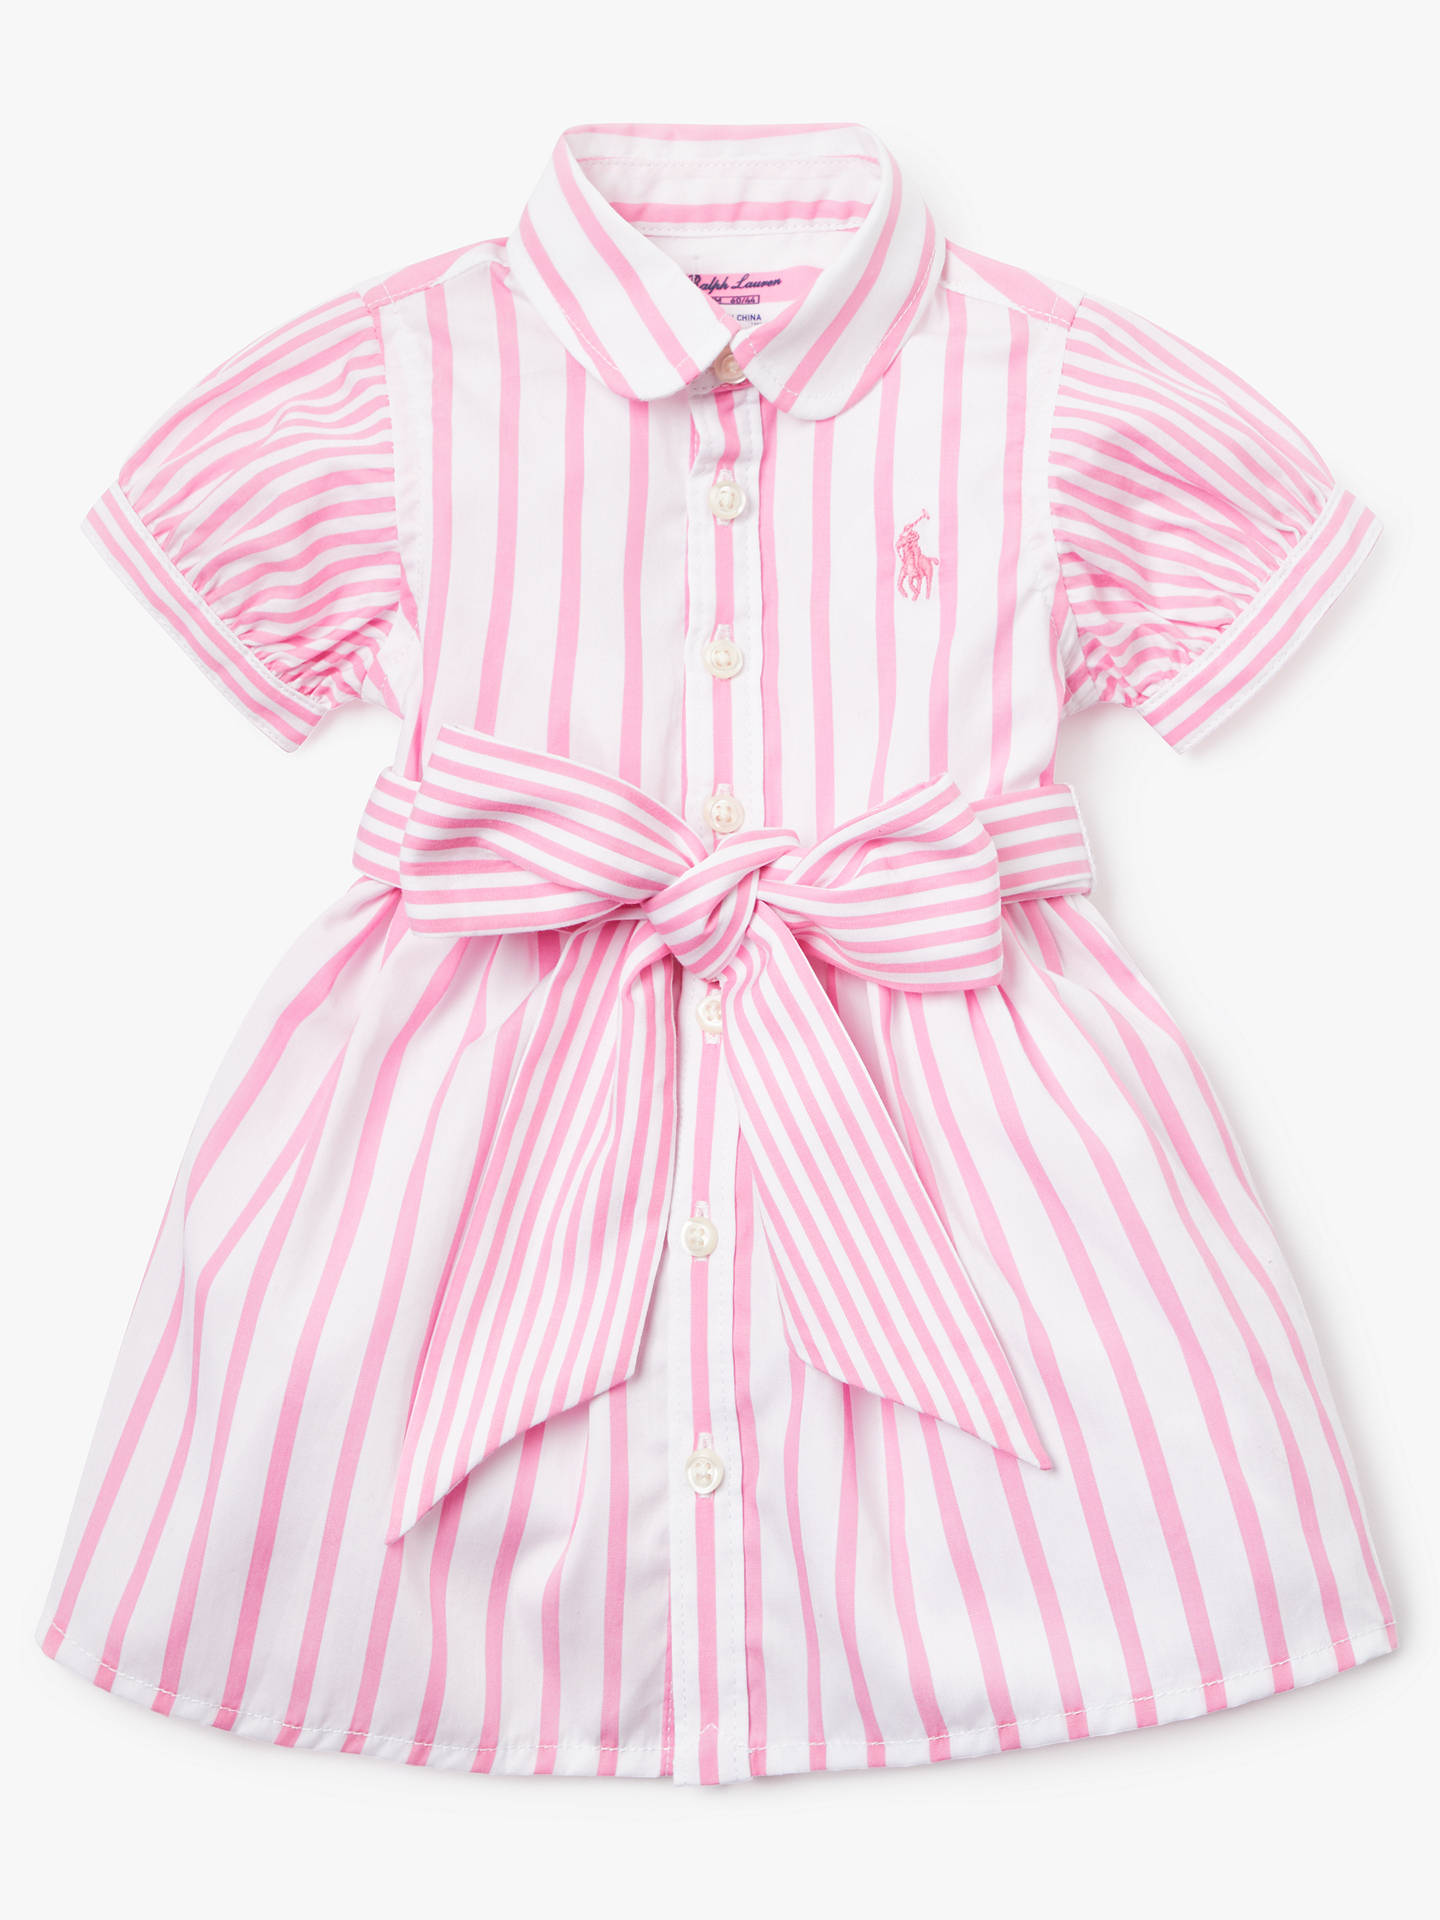 c9a555fa Buy Polo Ralph Lauren Baby Stripe Shirt Dress, Pink, 3 months Online at  johnlewis ...